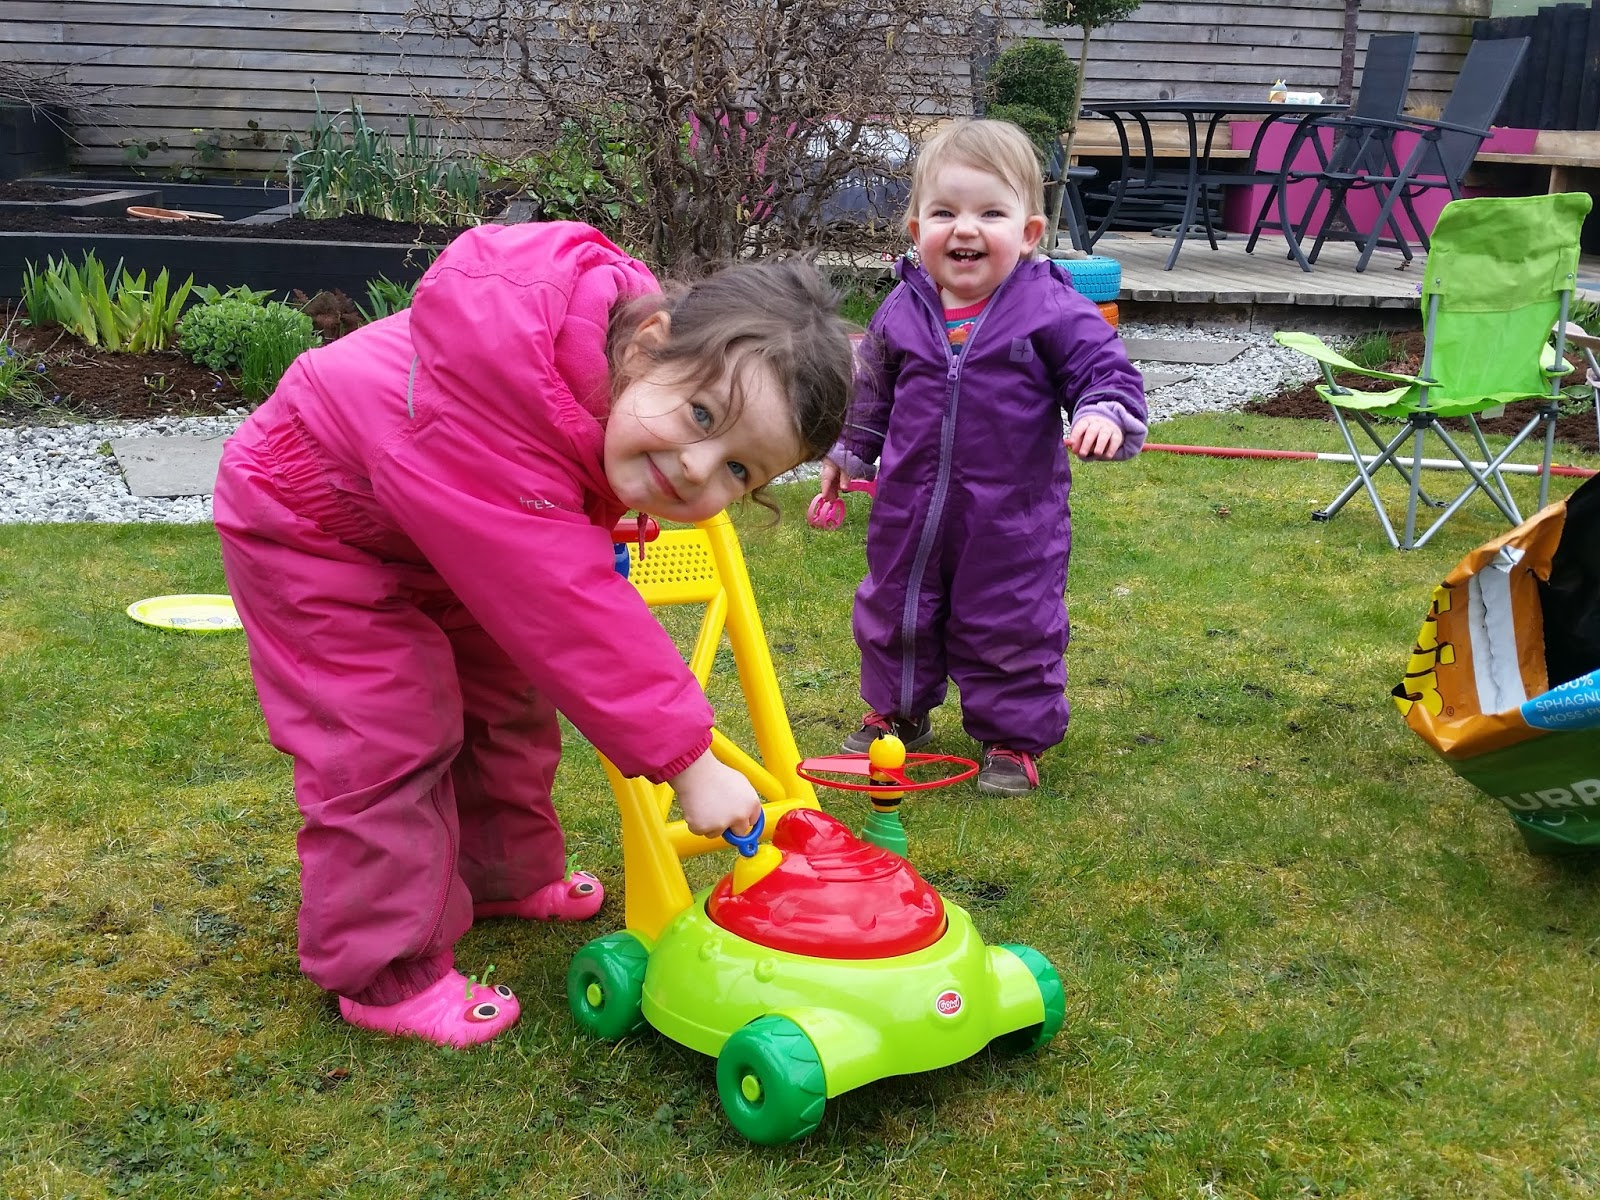 Get outside and have fun this National Gardening Week